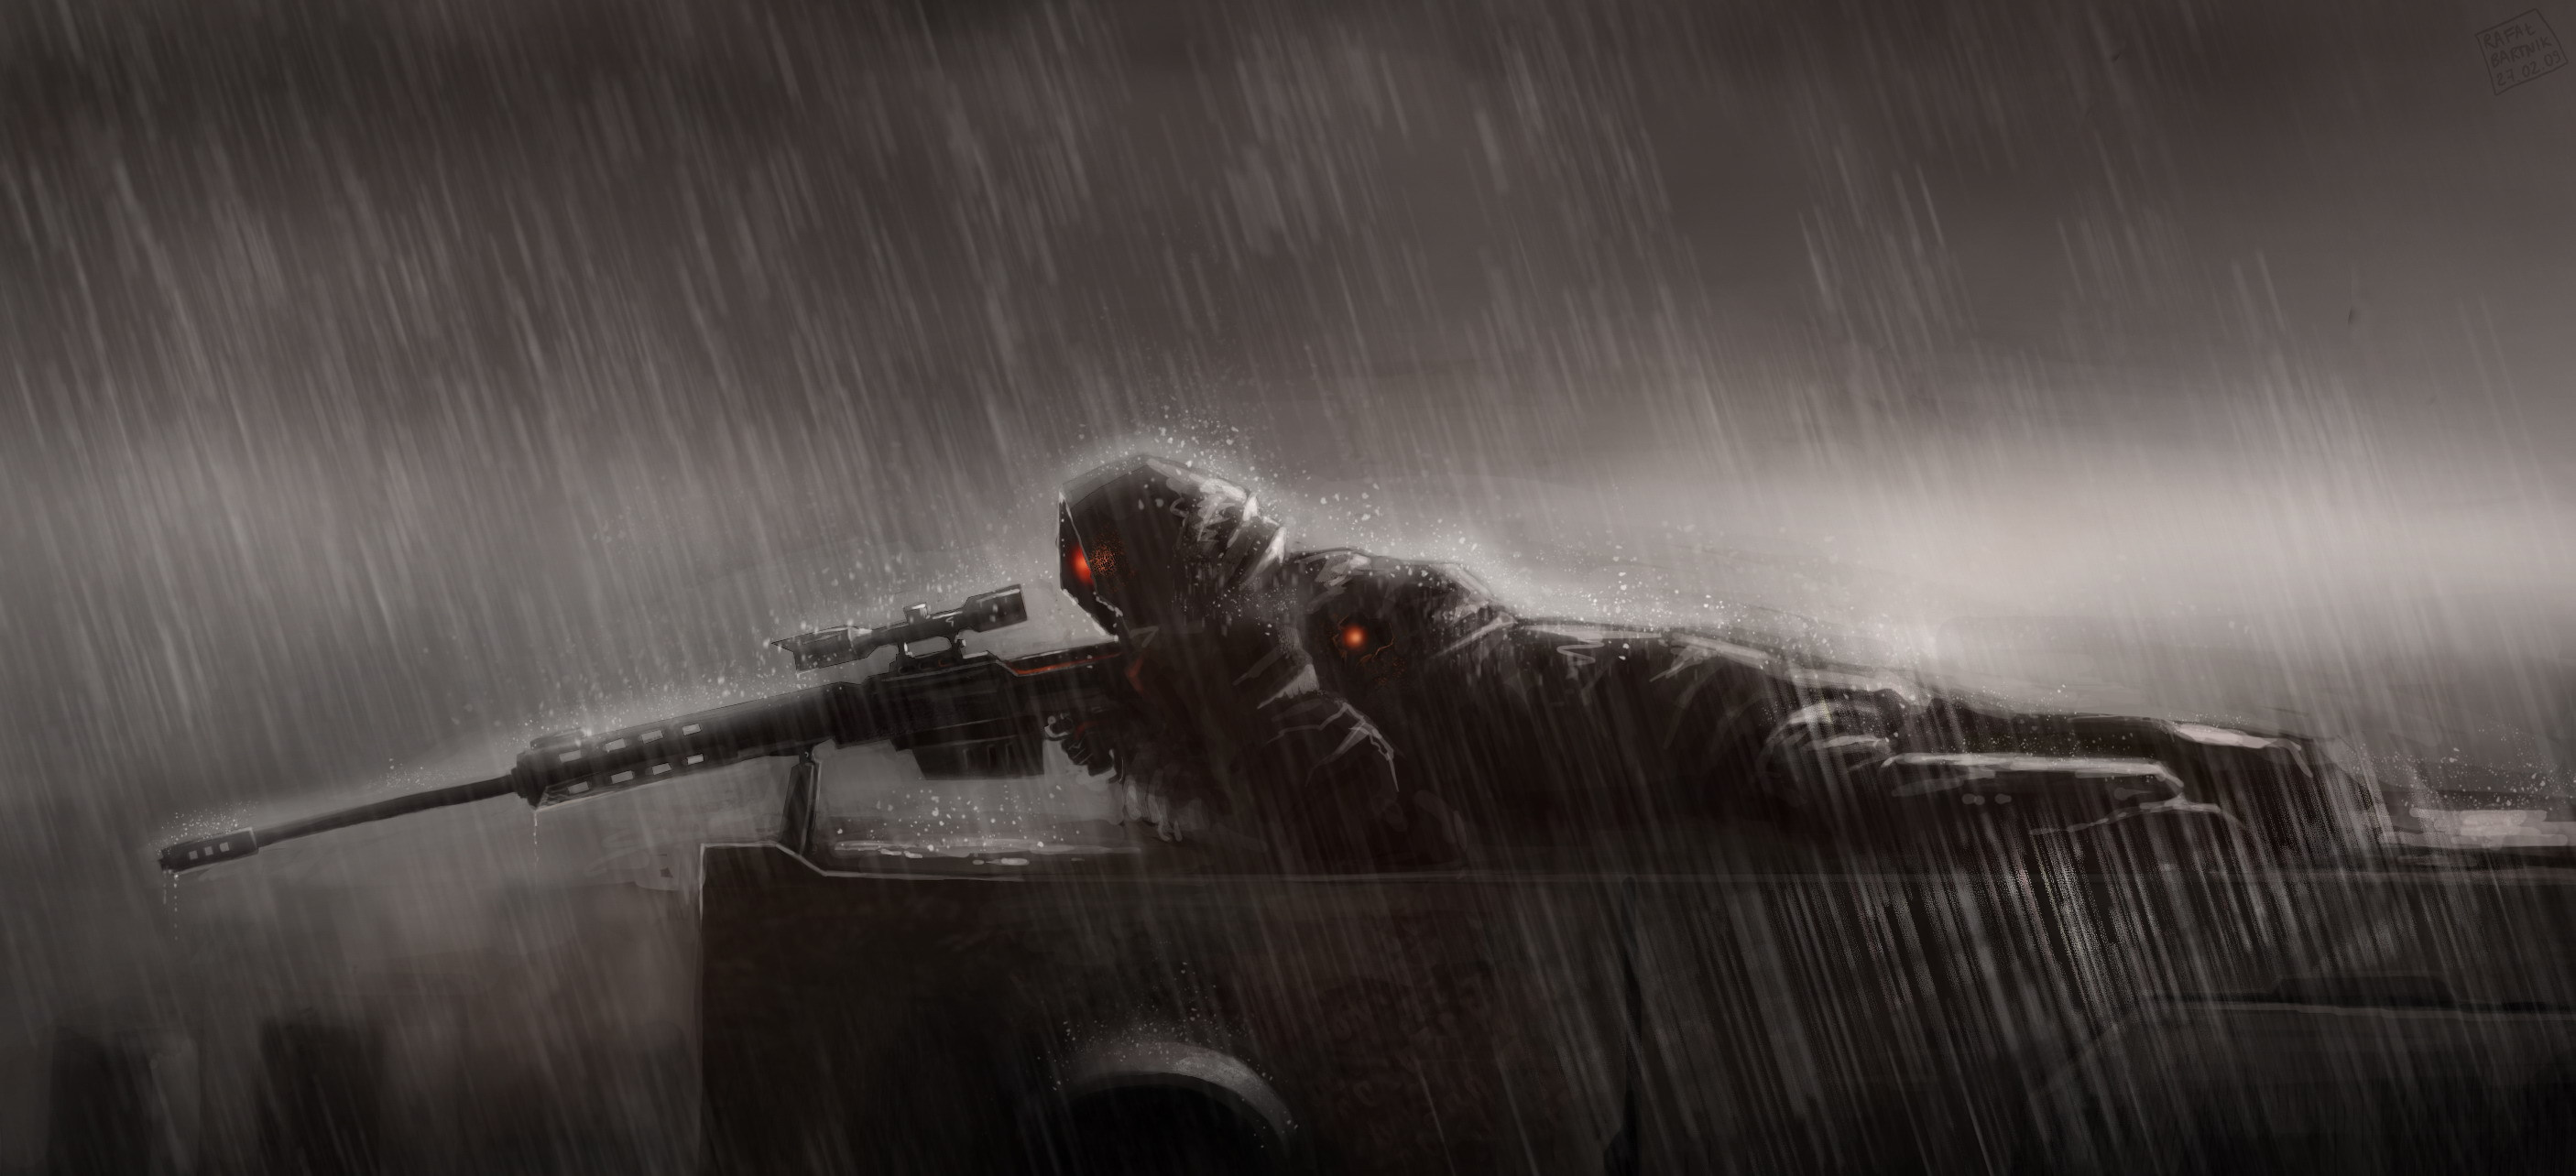 Wallpaper sniper rain sniper lies position rain sniper rifle 2812x1284